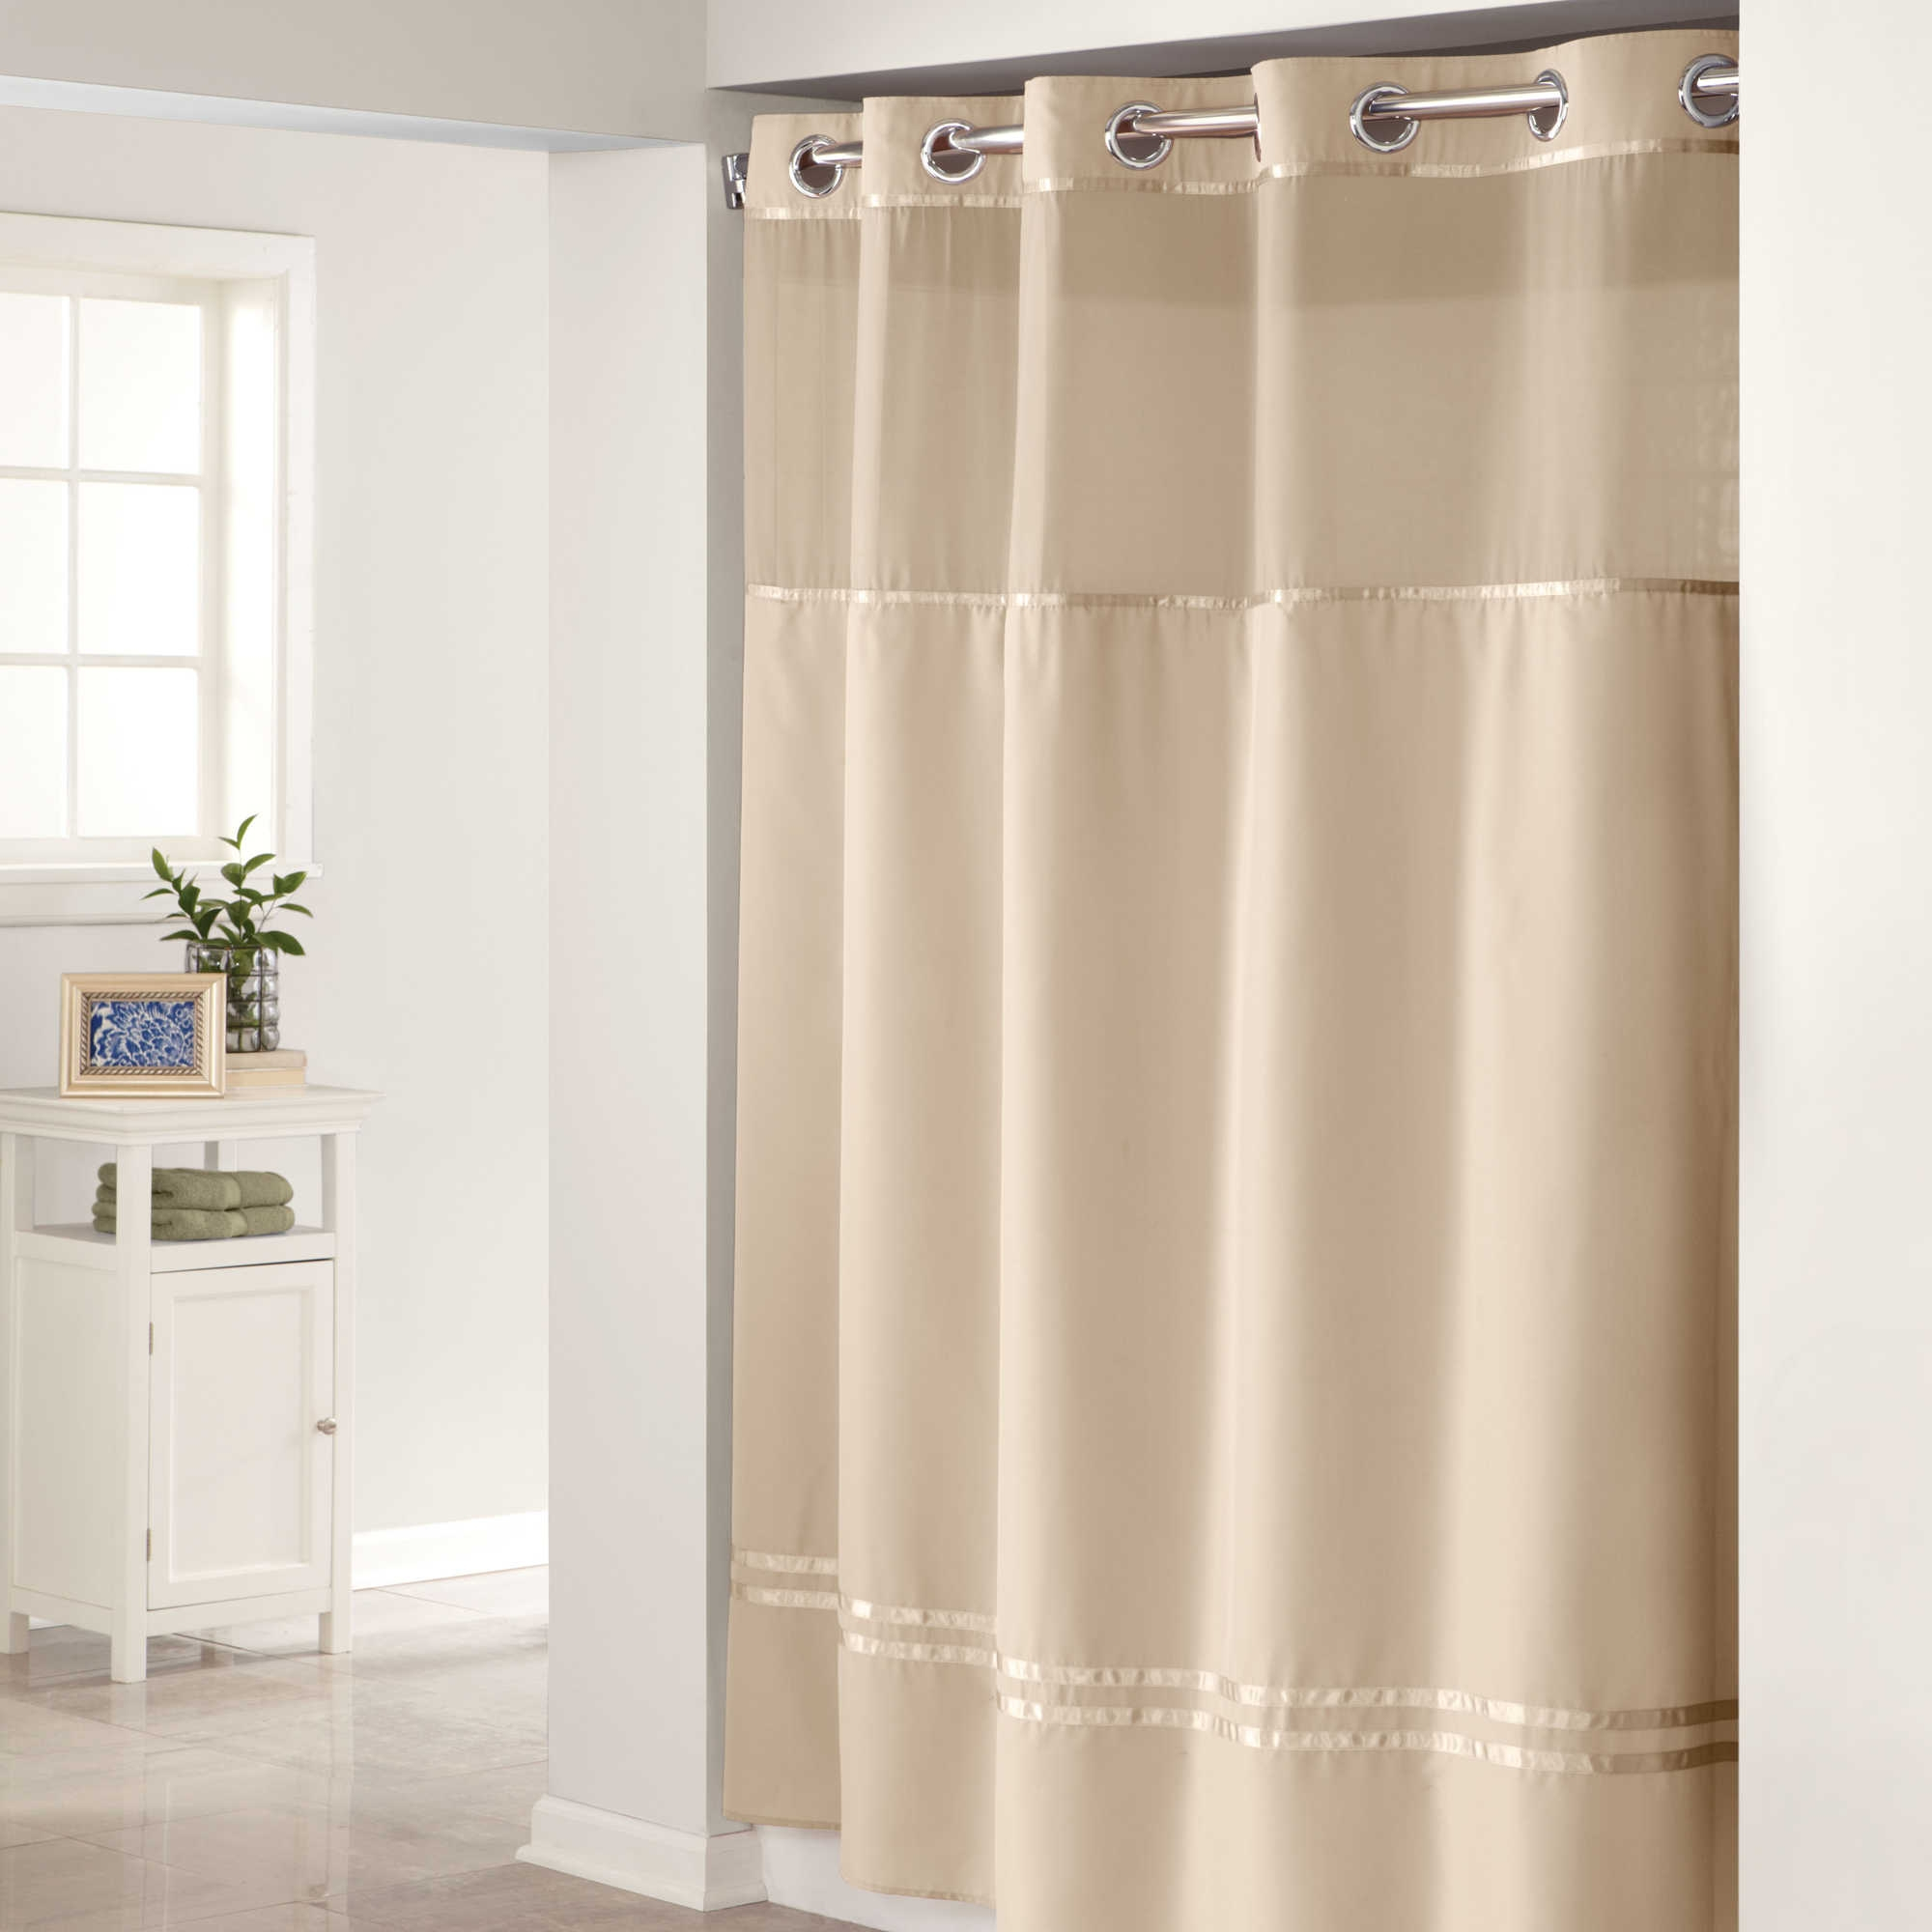 Green Hookless Shower Curtain With Window Curtain Rods And within proportions 2000 X 2000